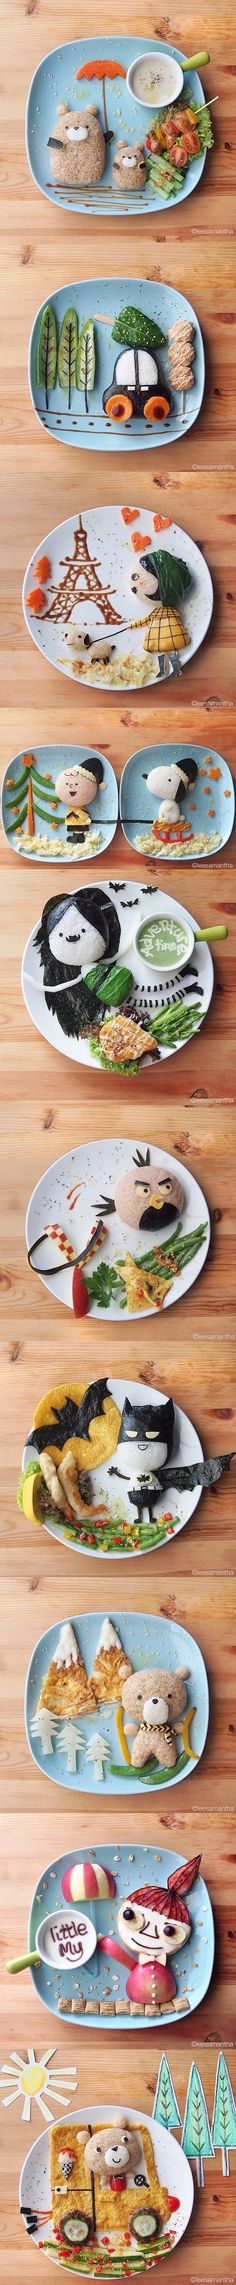 Still Cracking » Its Your Time To Laugh!Amazing Food Art By Samantha Lee - Still Cracking